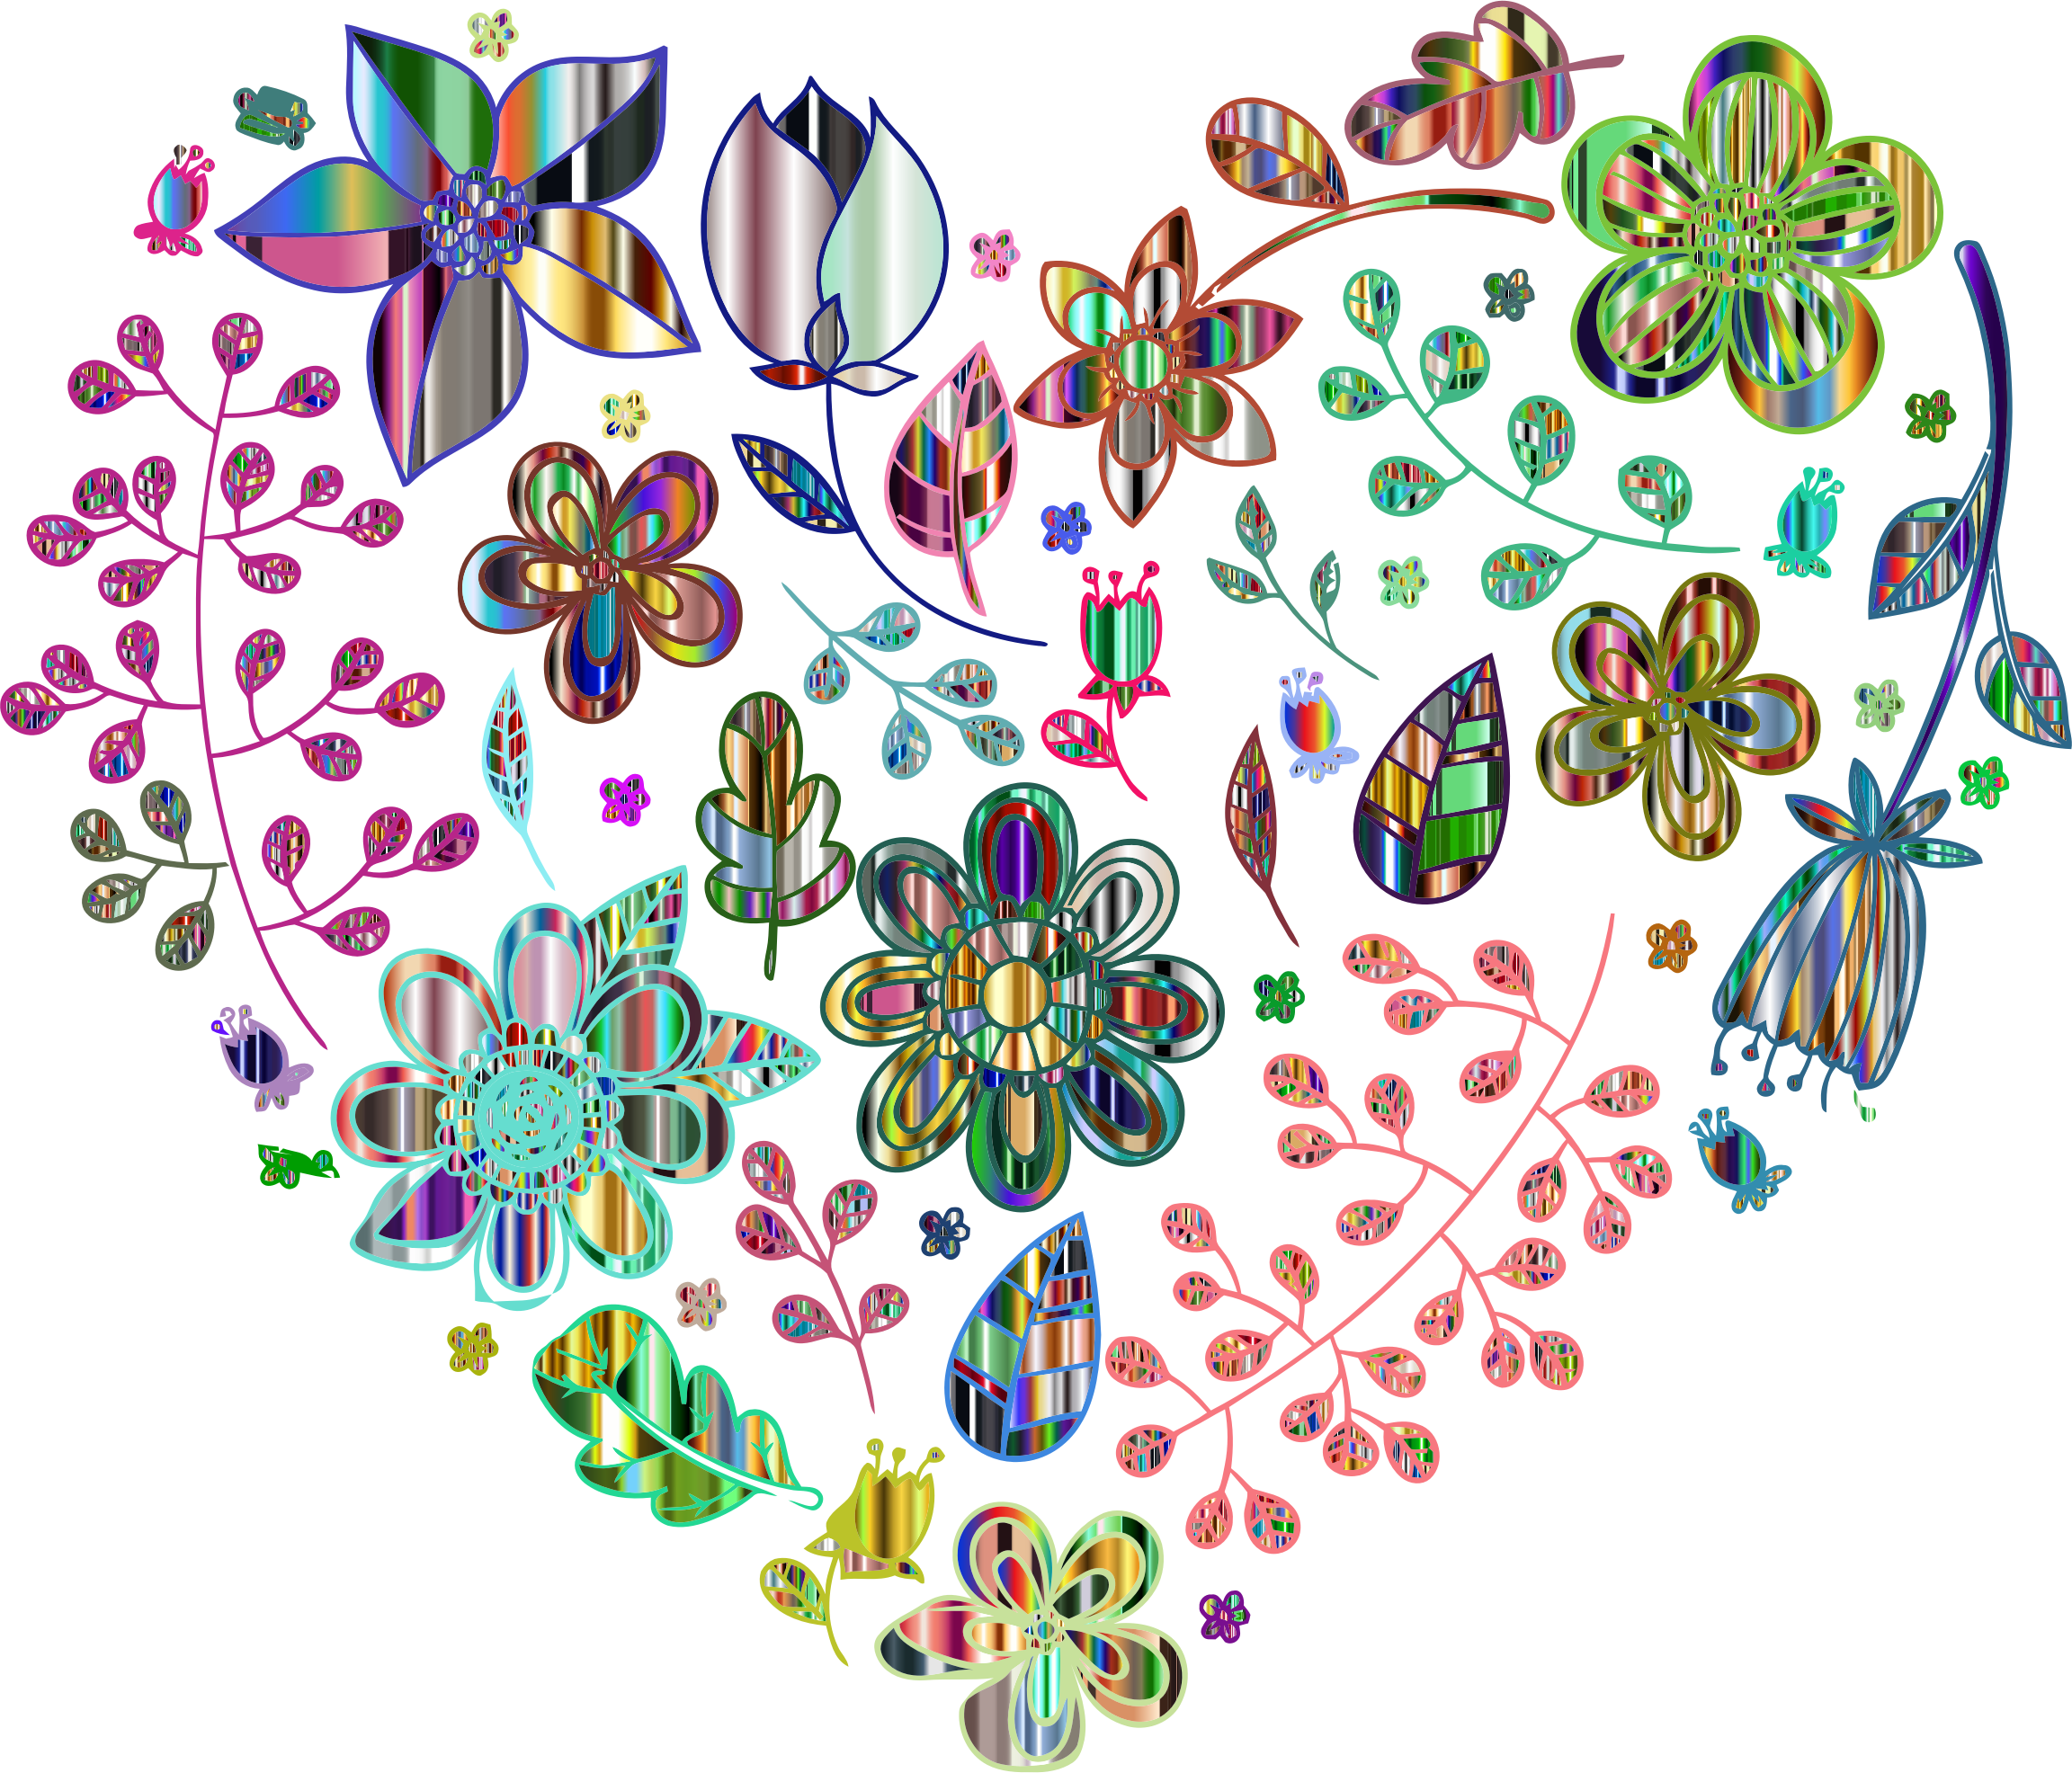 Prismatic Psychedelic Floral Heart 6 No Background by GDJ